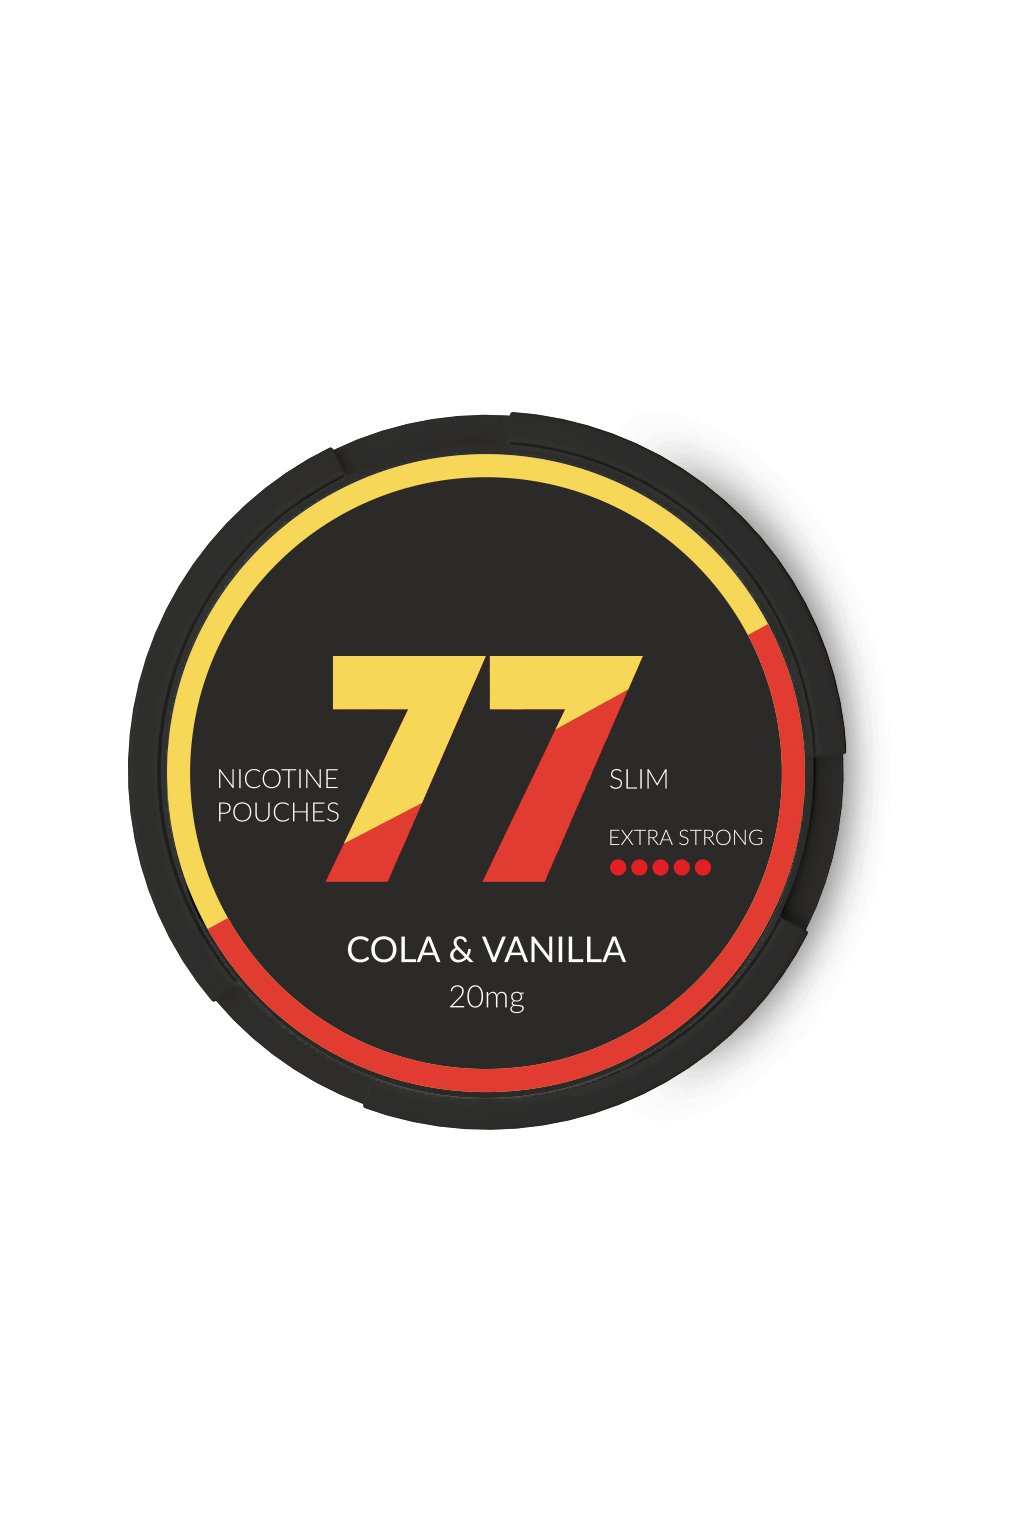 77 nikotinove sacky nicopods cola vanilka nordiction